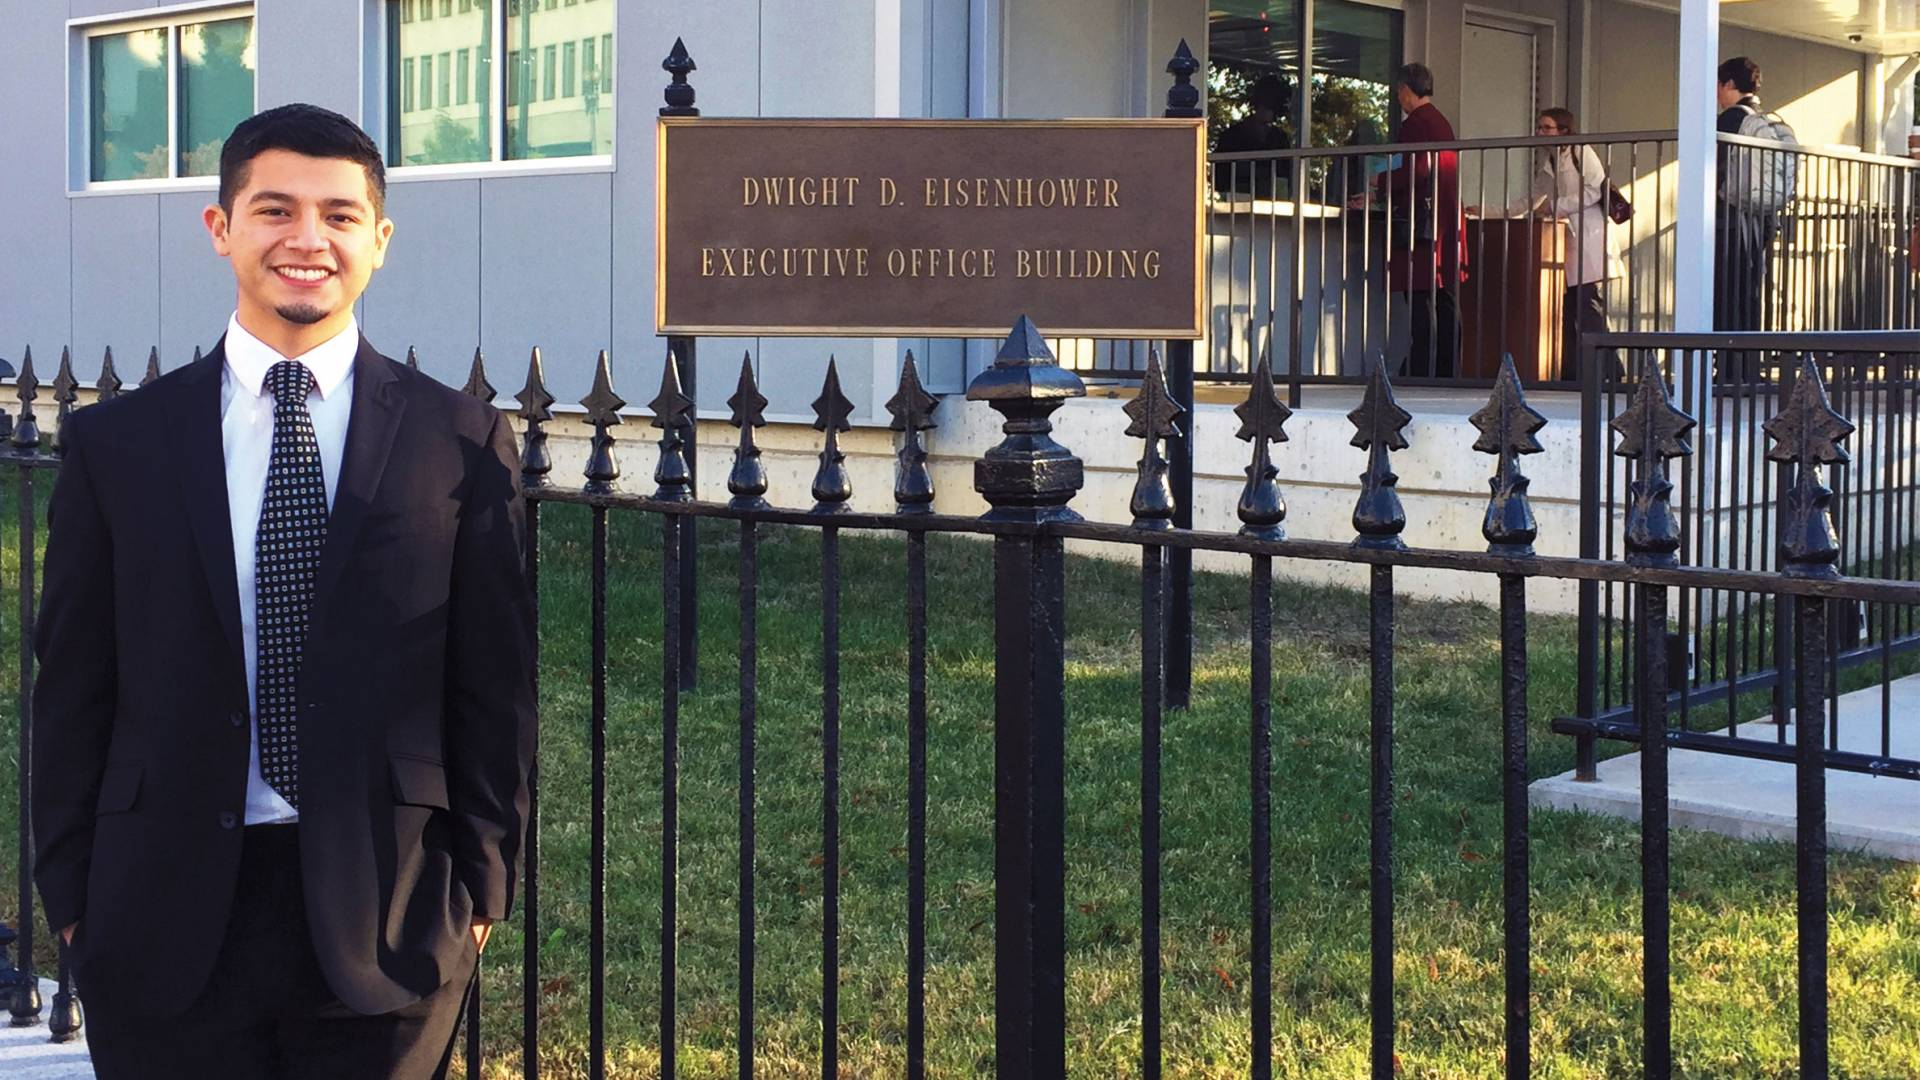 Luis Carchi standing outside Dwight D. Eisenhower building